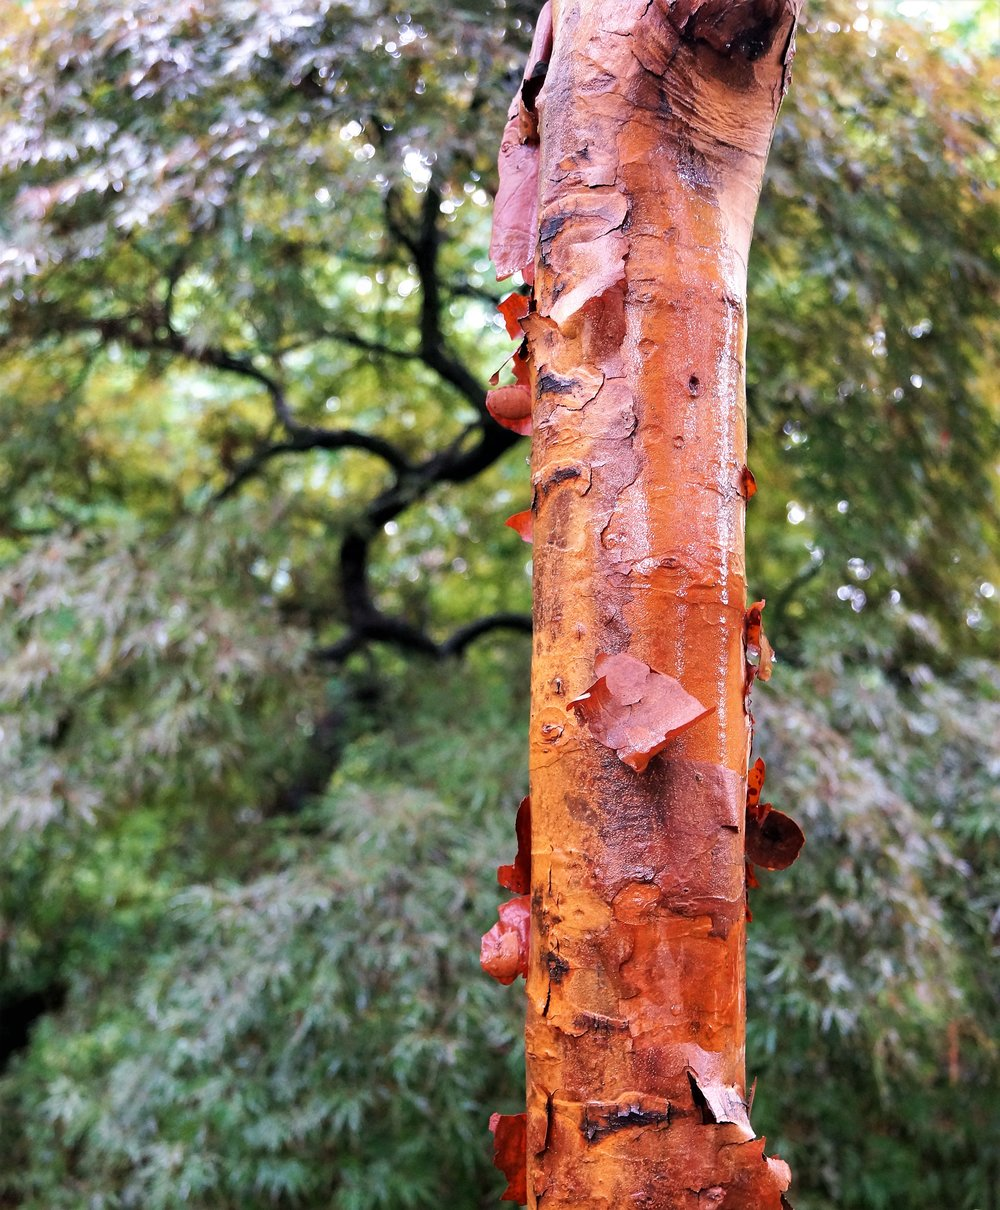 Acer griseum had some of its peeling bark knocked off by the rain, but still has a beautiful color. 'Orangeola' in the background will grab your attention any time of the year.